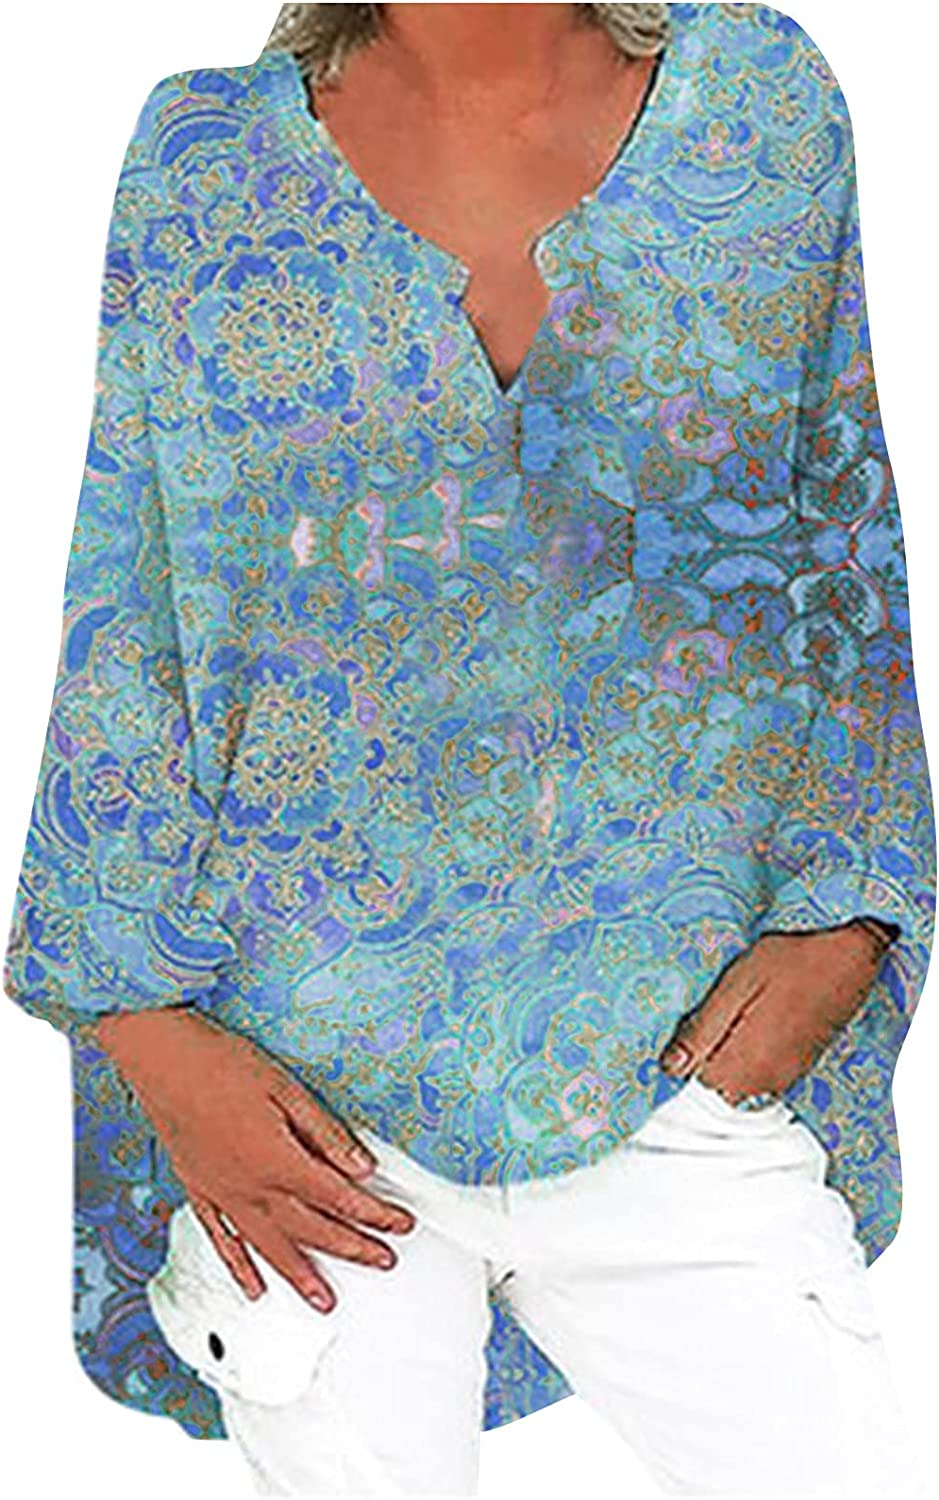 Linen Cotton T-Shirt Tops for Women Pattern Printed Fashion Trendy Loose Fit Long Sleeve Retro V-Neck Blouses Tees